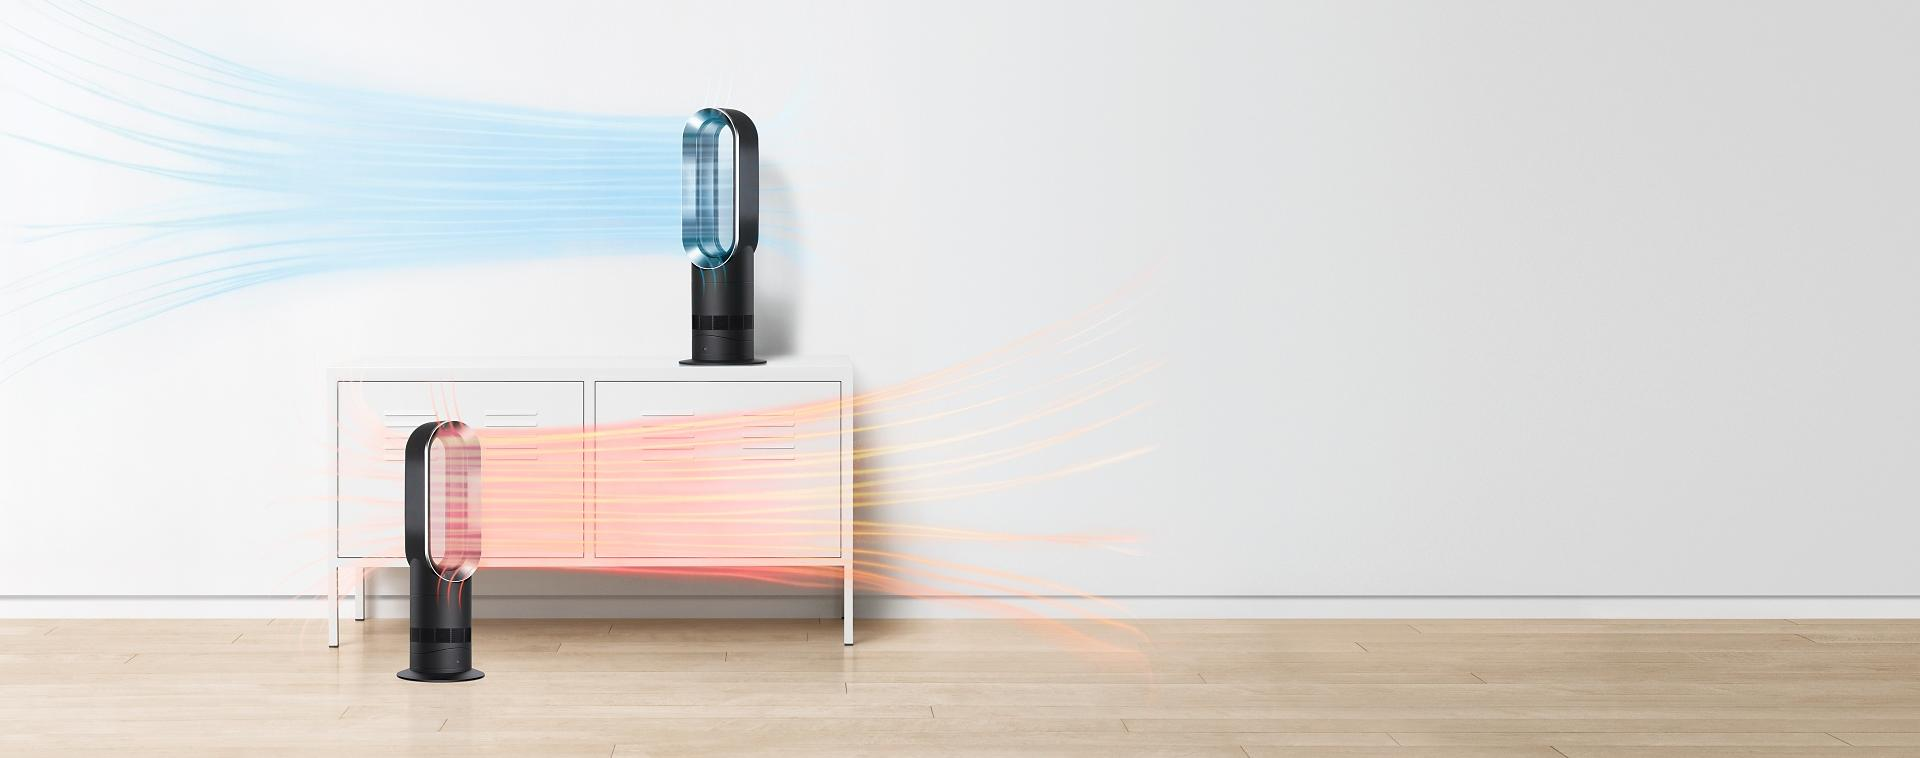 Dyson fan heaters on floor and table